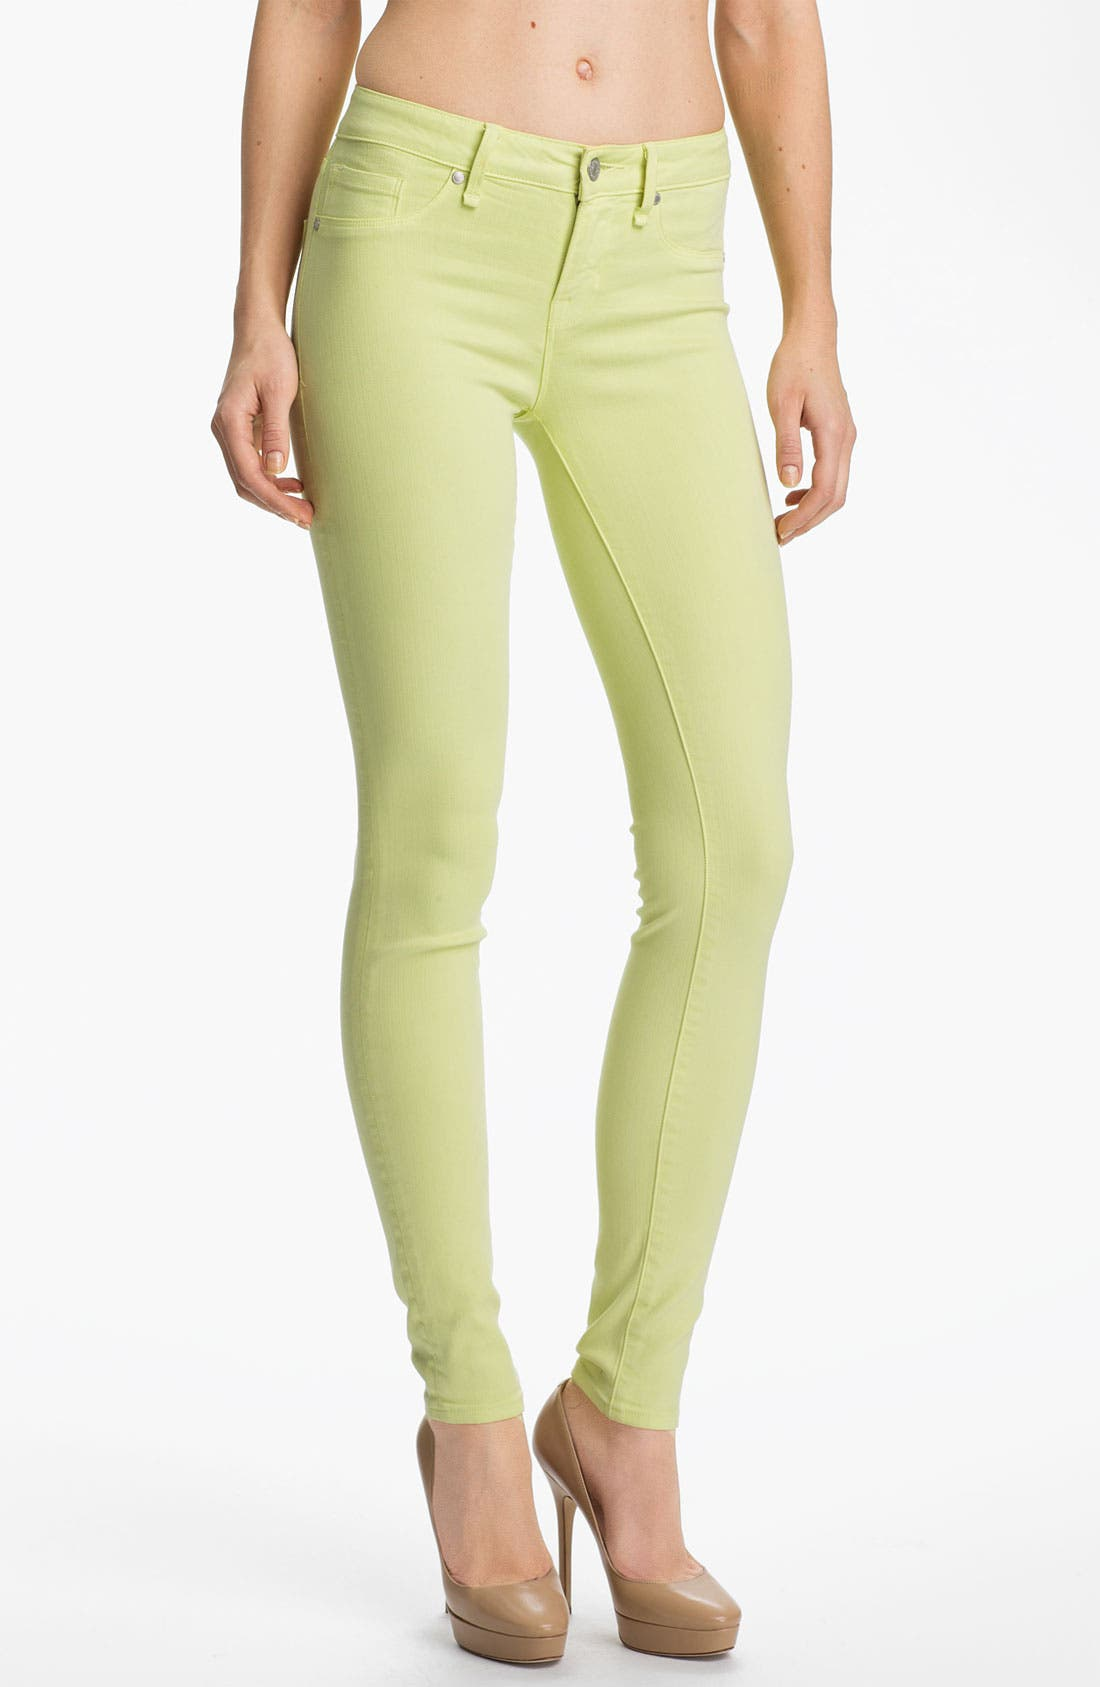 Main Image - MARC BY MARC JACOBS 'Stick' Skinny Jeans (Lemon Sorbet)